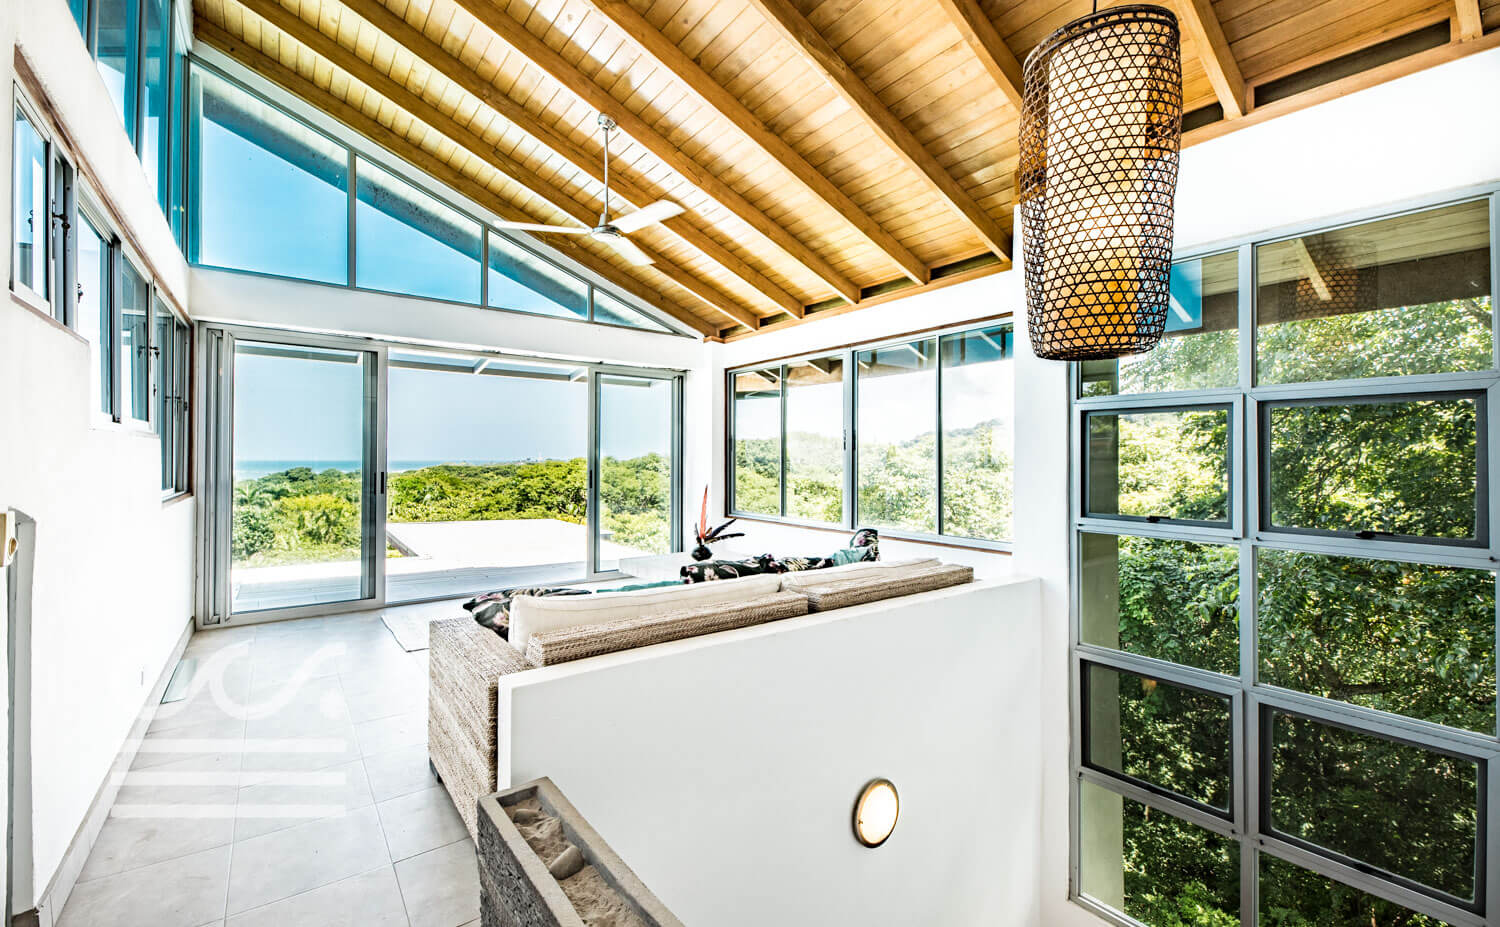 Casa-Luca-Wanderlust-Realty-Real-Estate-Retals-Nosara-Costa-Rica-35compressed.jpg